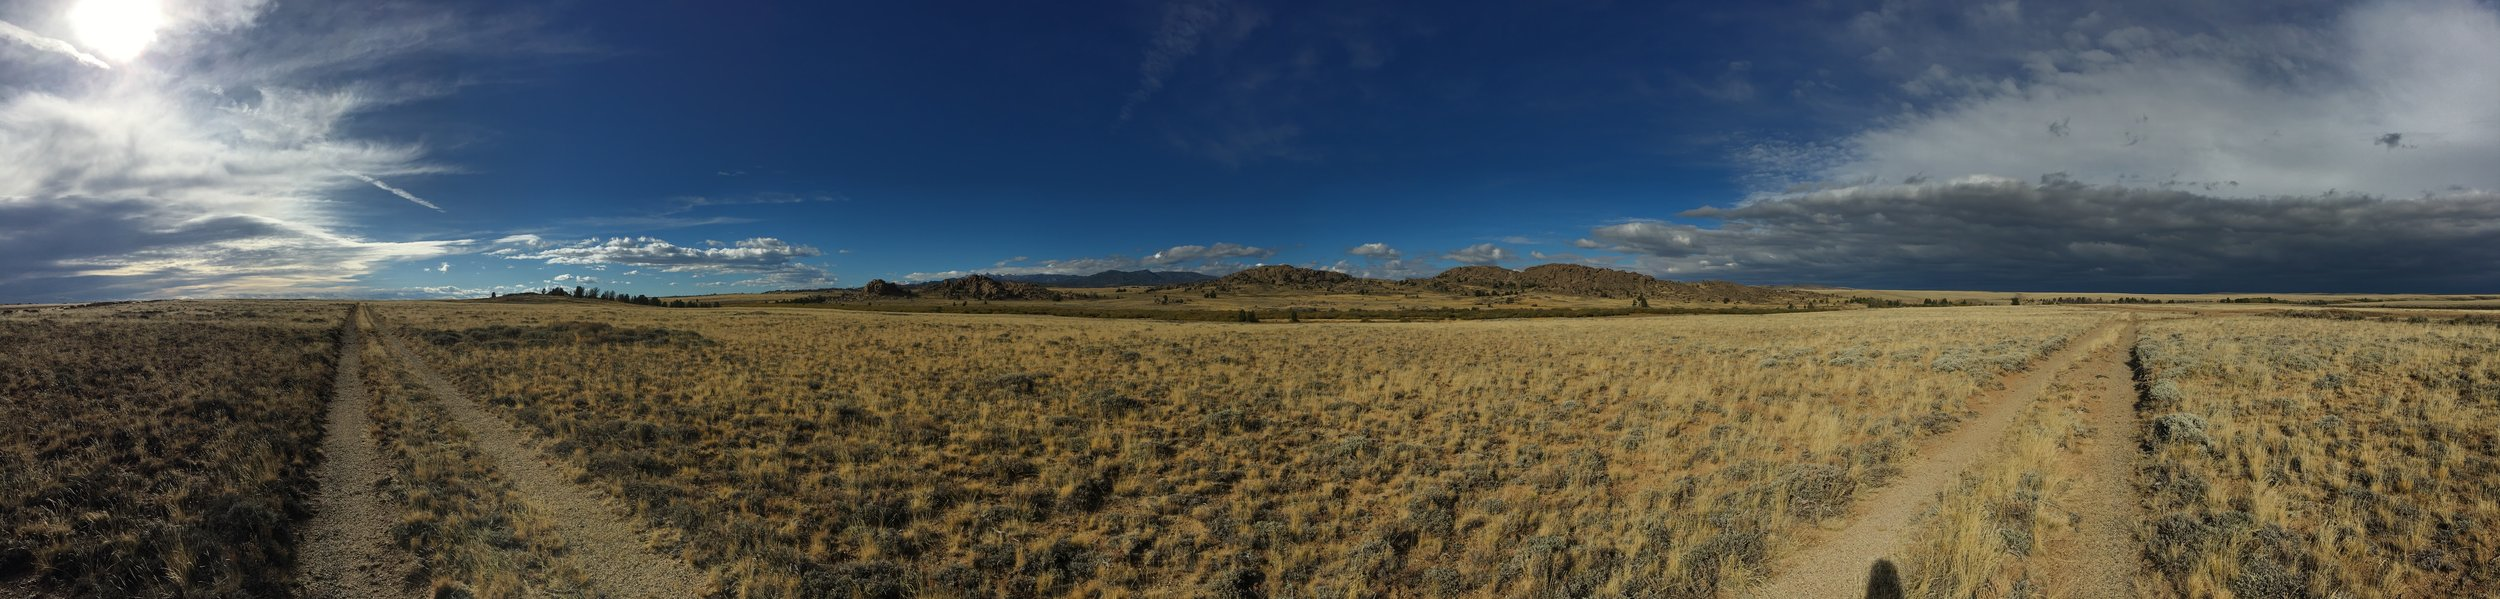 The Great Basin, in all its glory!